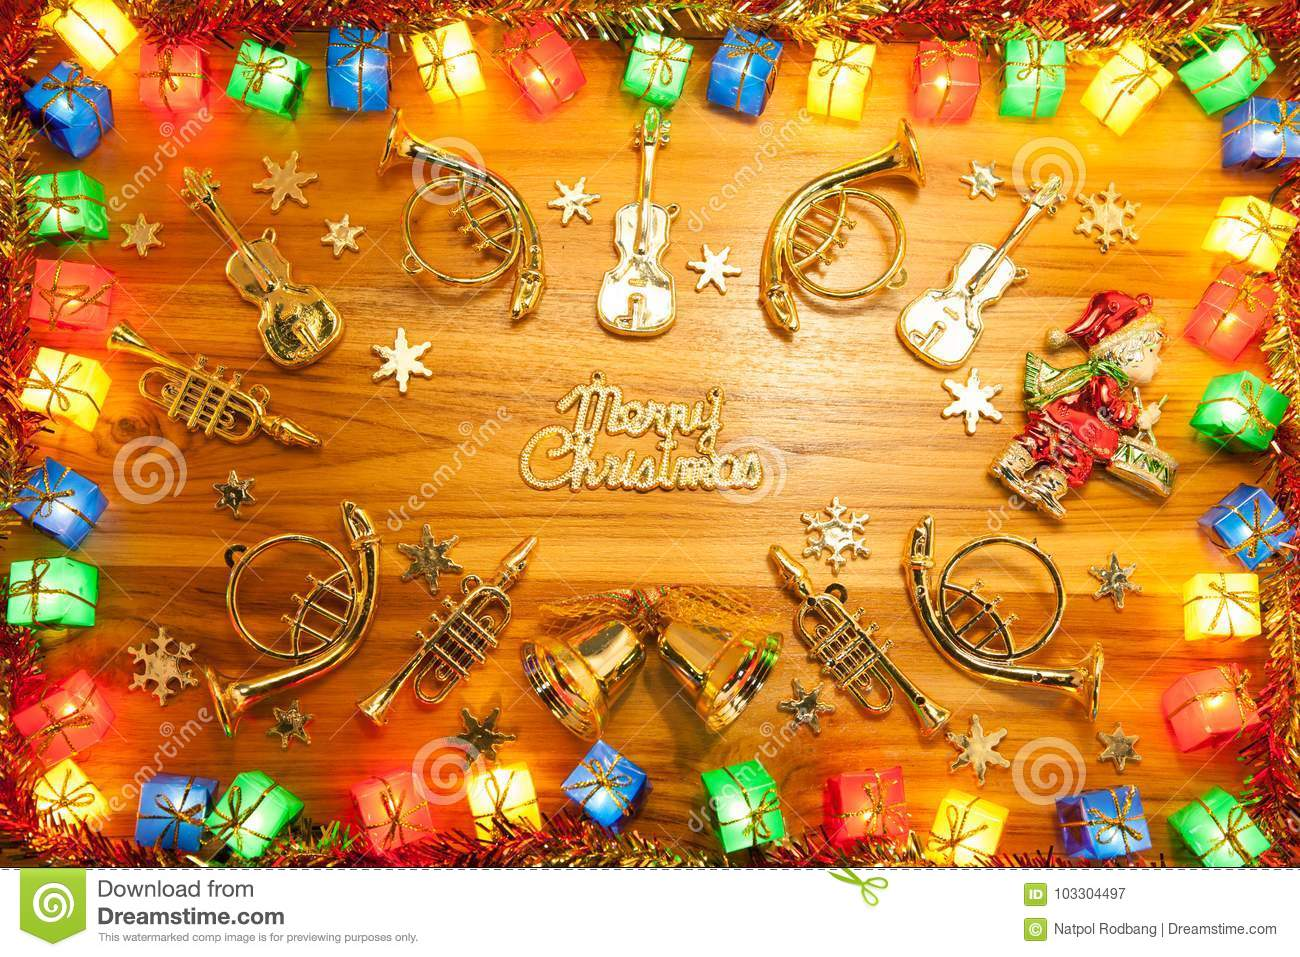 download christmas lights gift box frame and musical instrument on golden stock image image of